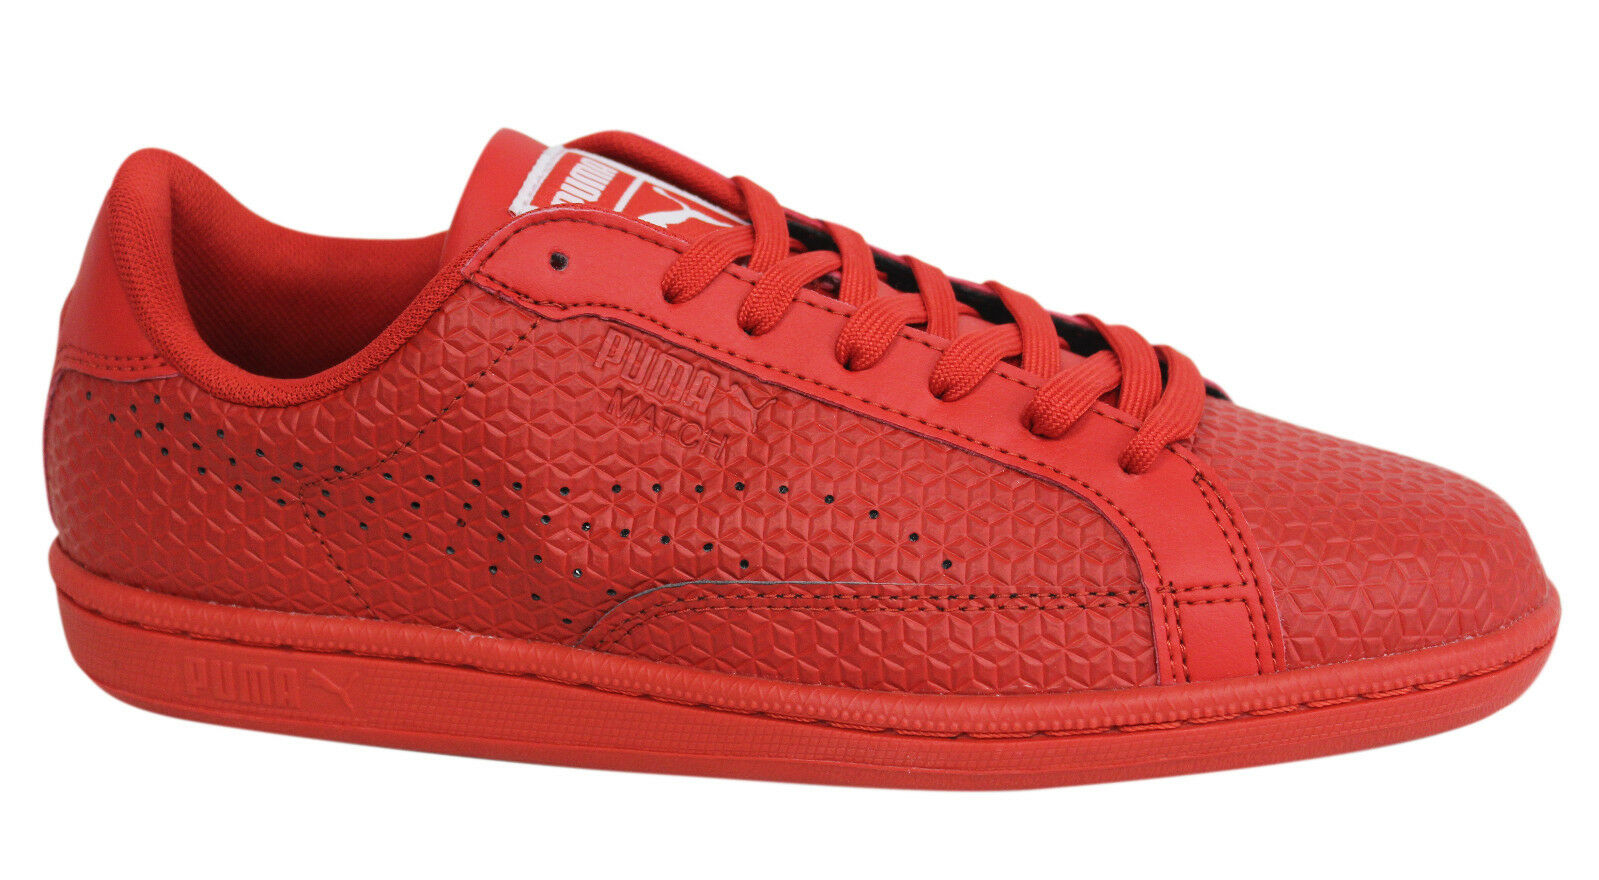 Puma Match Emboss Lace Up High Risk Red Synthetic Leather Trainers 362227 02 U12